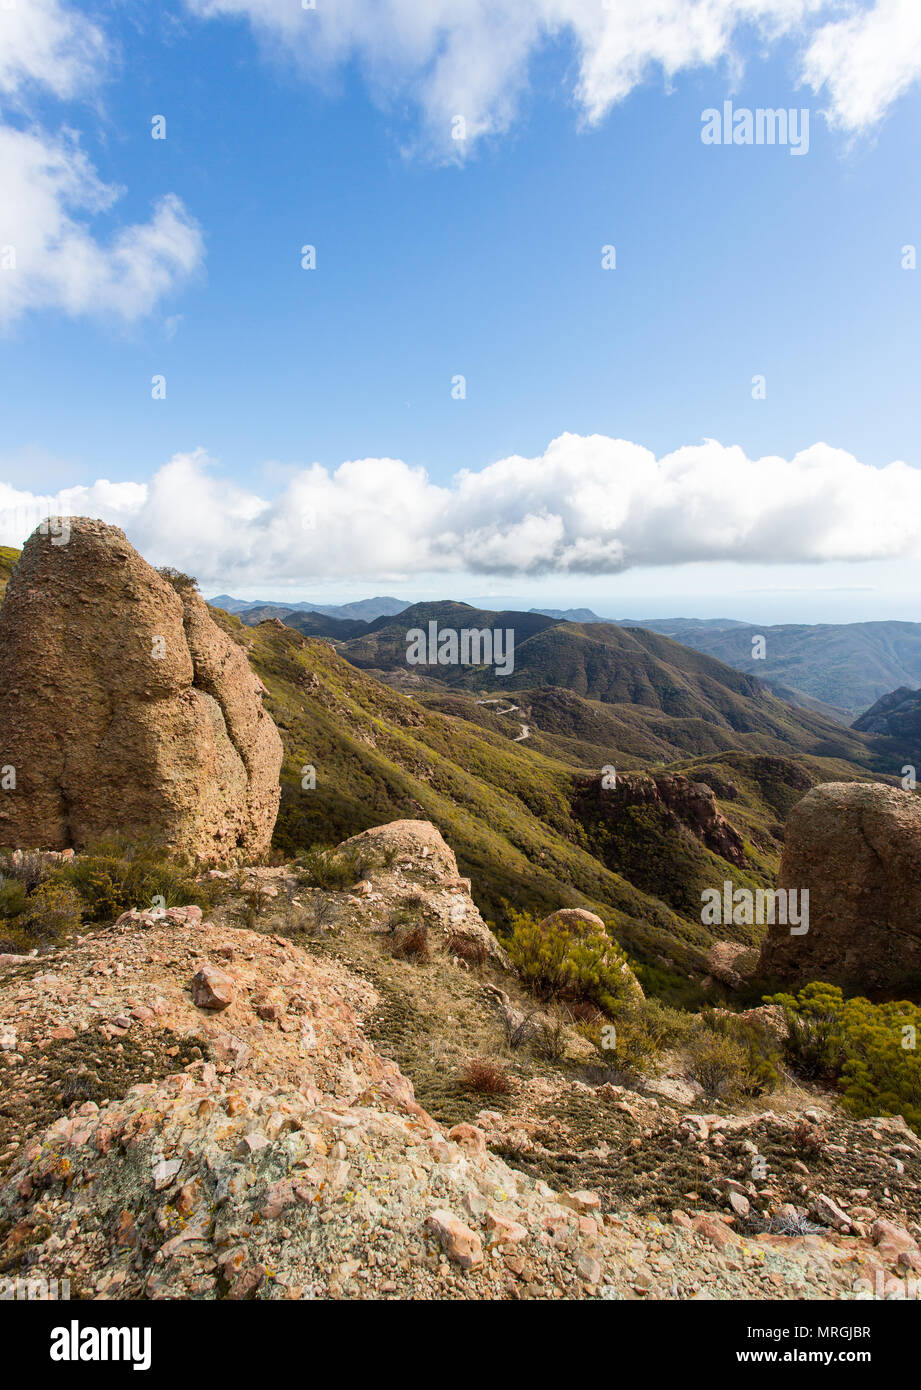 A landscape view of the western end of the Santa Monica Mountains from the Backbone Trail. - Stock Image